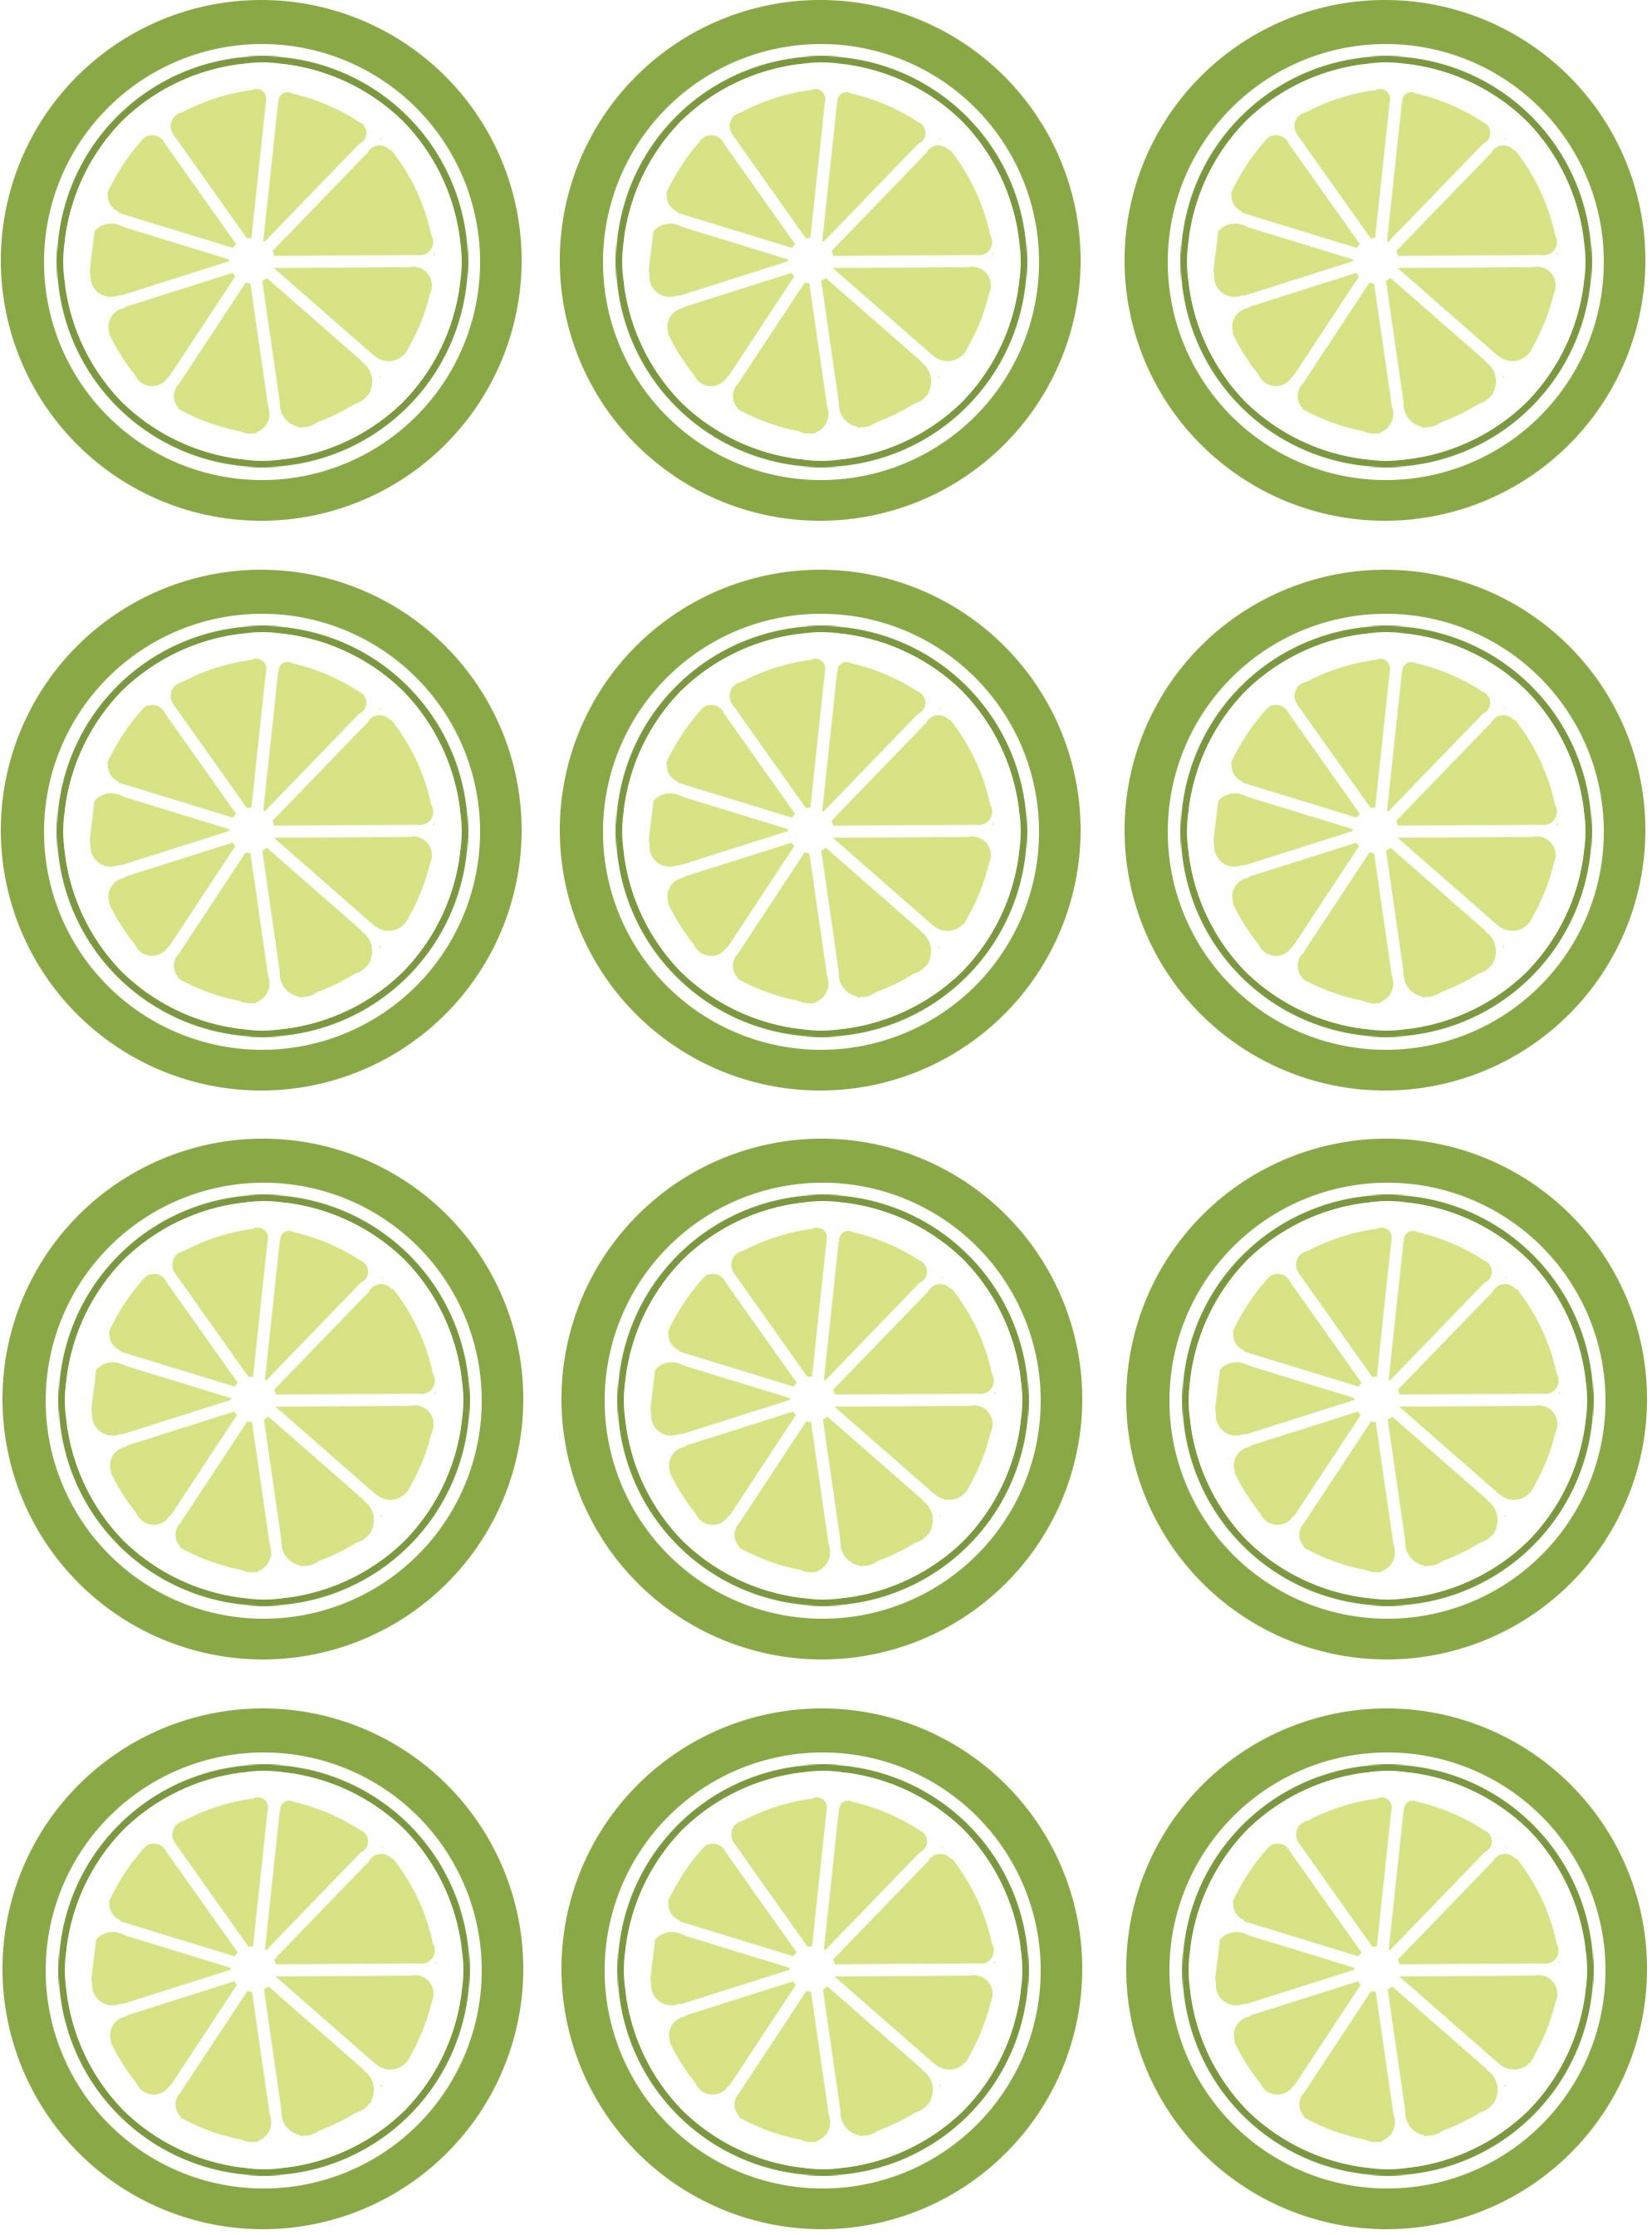 lime_12up1.jpg (1989×2691) | Para Imprimir | Pinterest | Etiquetas ...